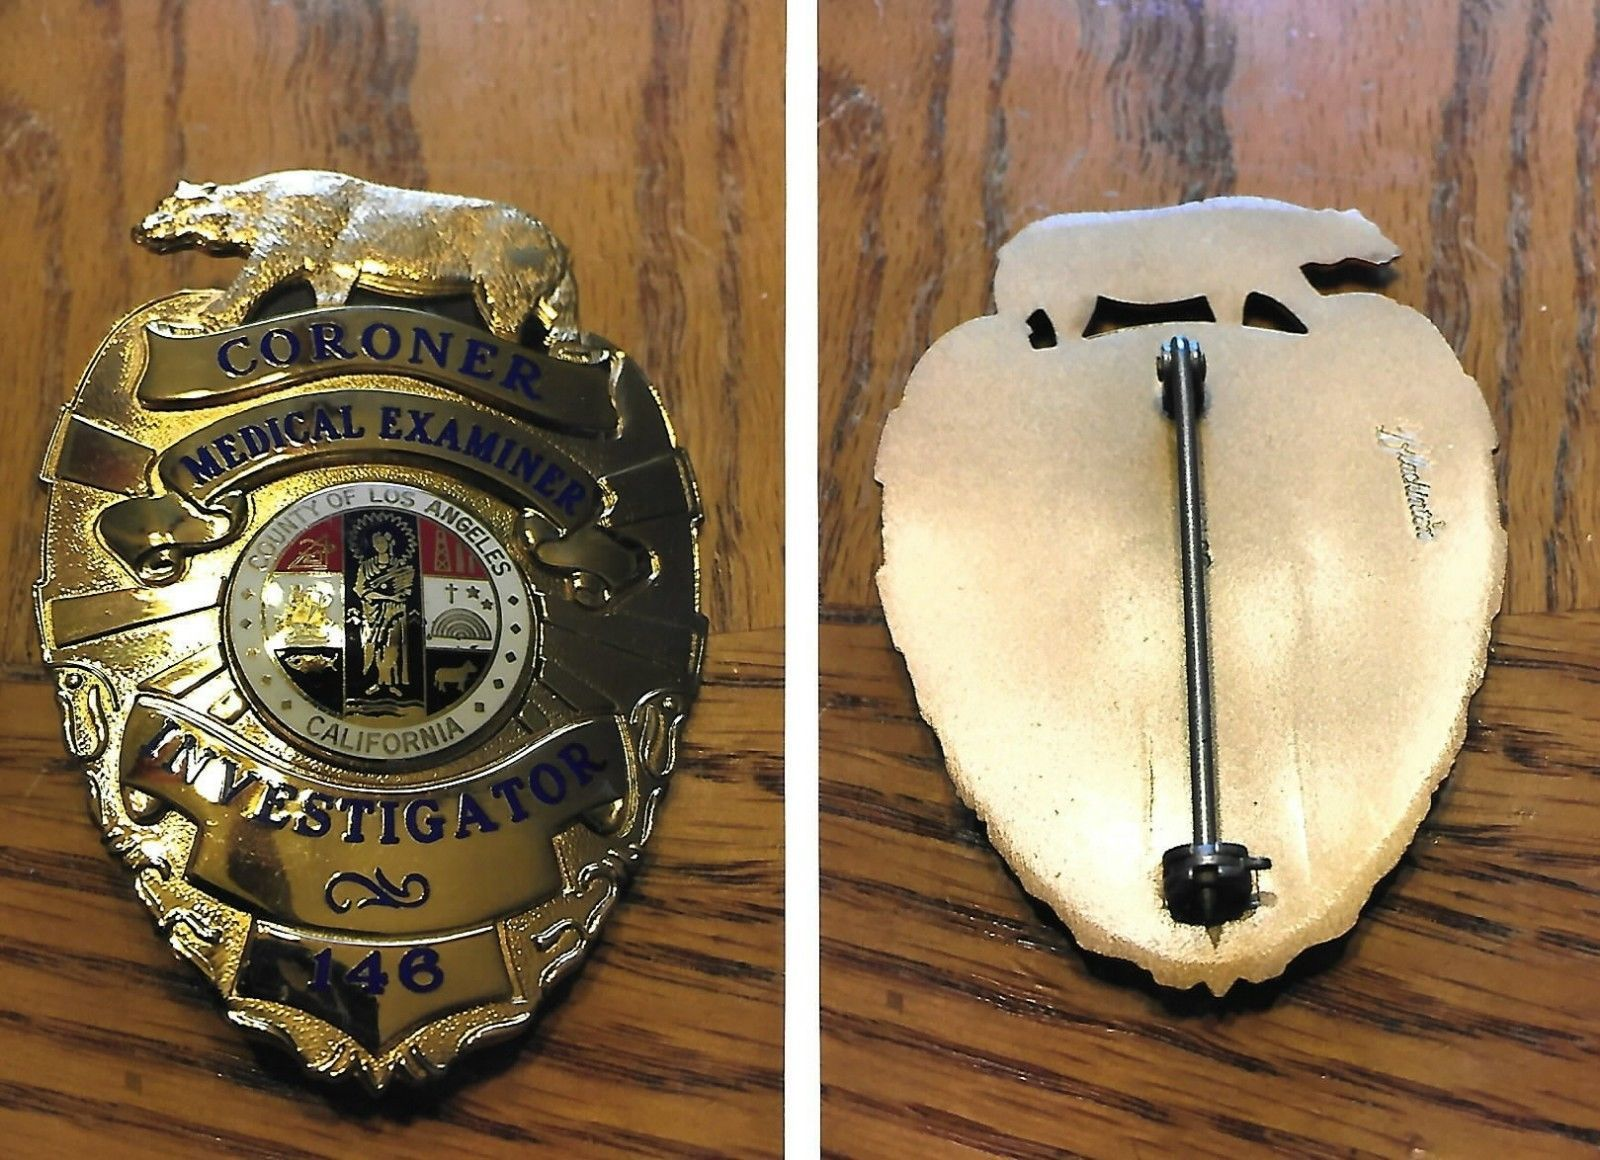 Investigator Coroner Medical Examiner Los Angeles County Police Badge Police Officer Badge Fire Badge